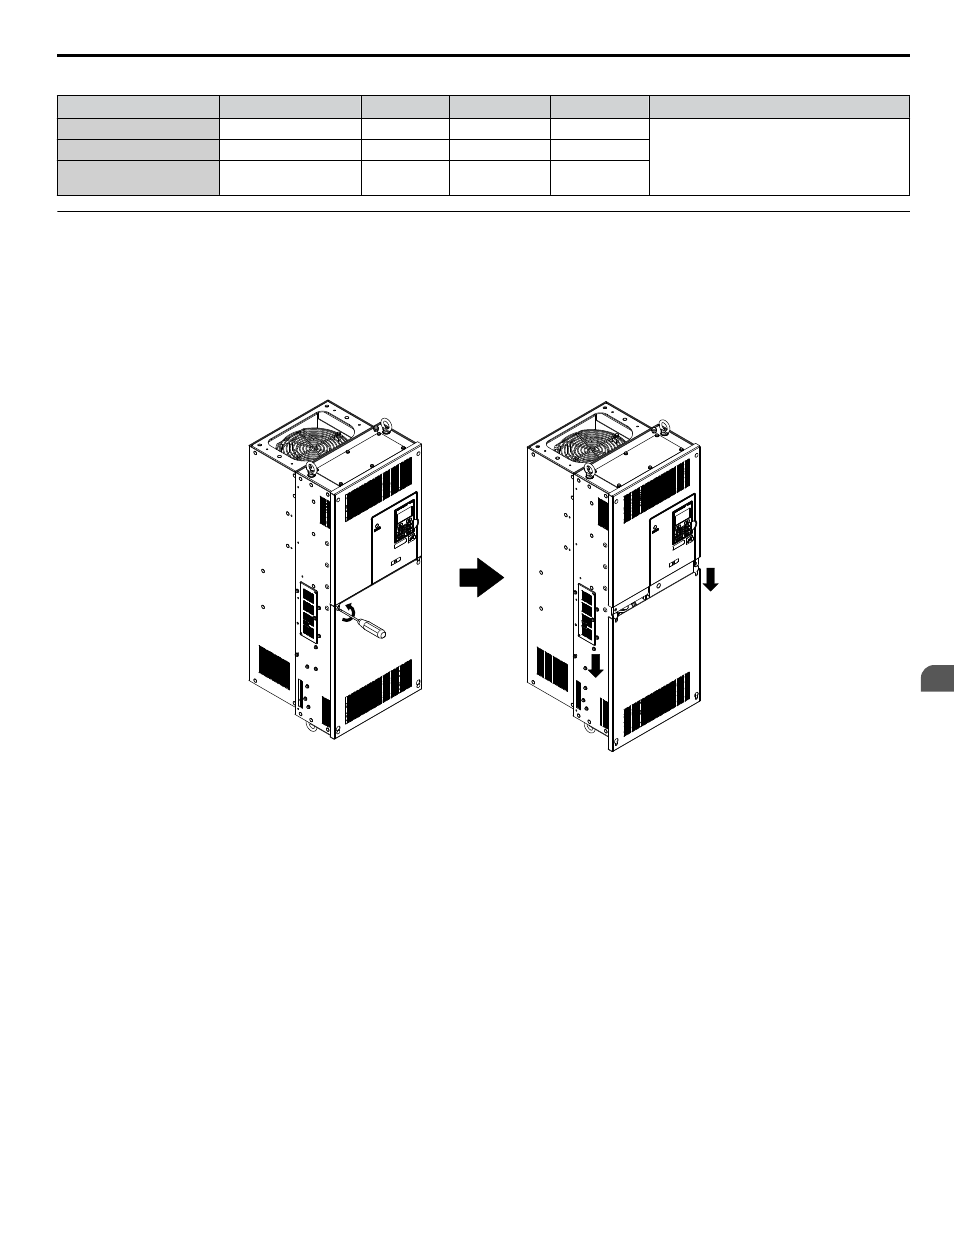 Drive Cover Removal Ends Refer To Table 311 Yaskawa Ac Z1000 Wiring Diagram Background Image